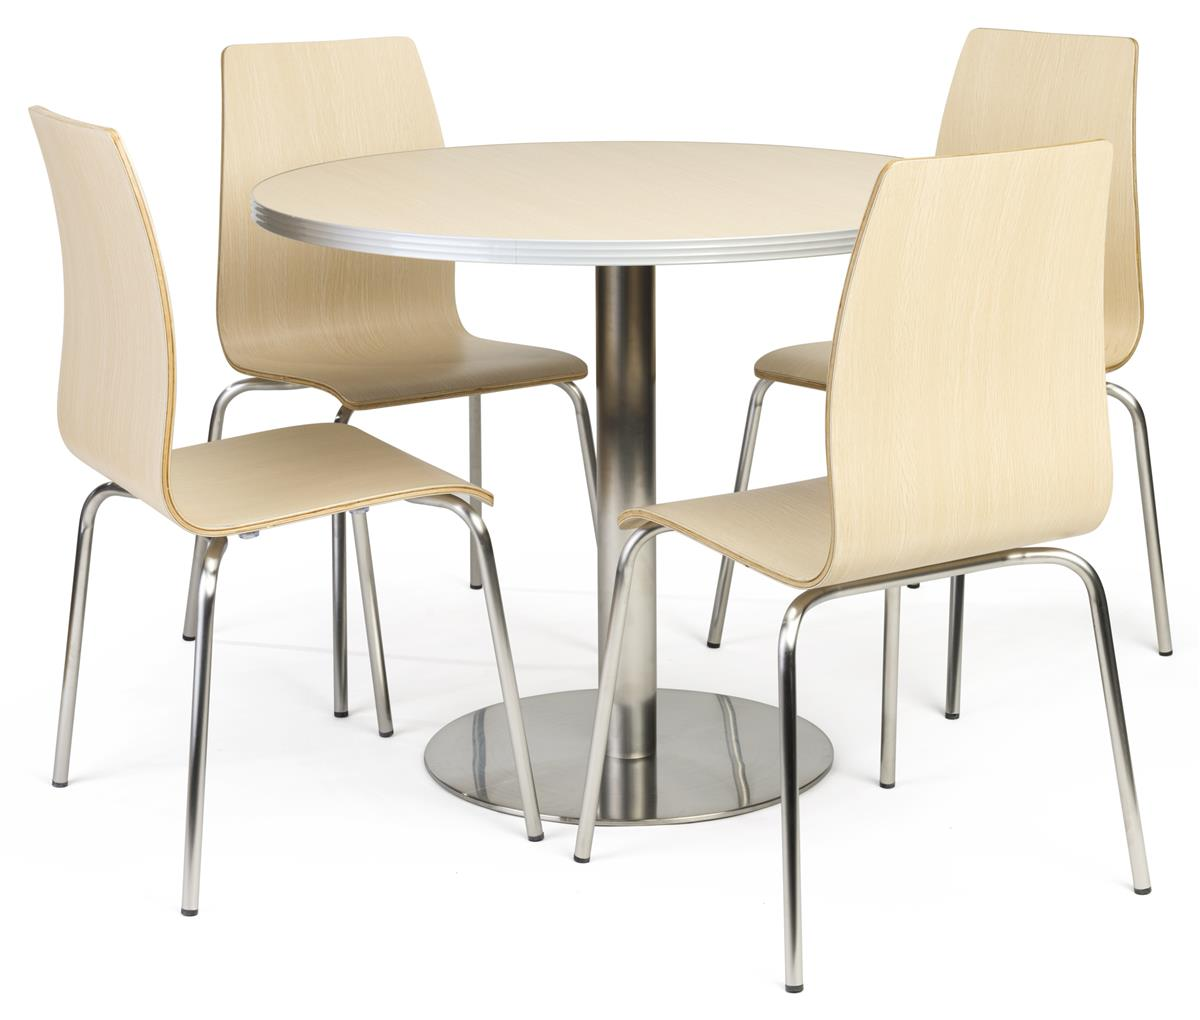 Break Room Chairs Cafeteria Breakroom Round Dining Table Set 5 Piece Set